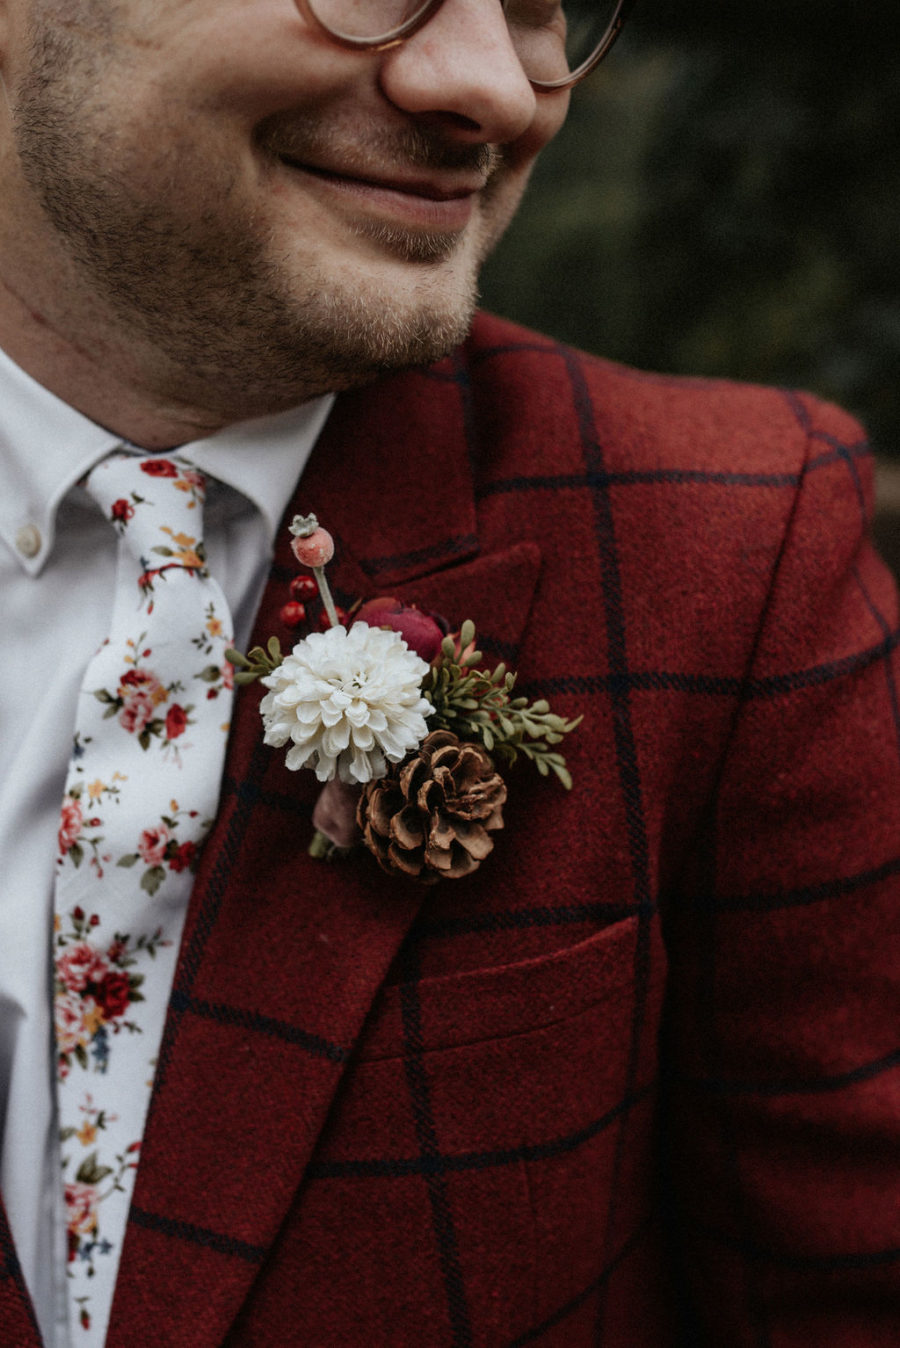 Checkered red wedding tuxedo: Magical Winter Wedding by Meghan Melia Photography featured on Nashville Bride Guide!